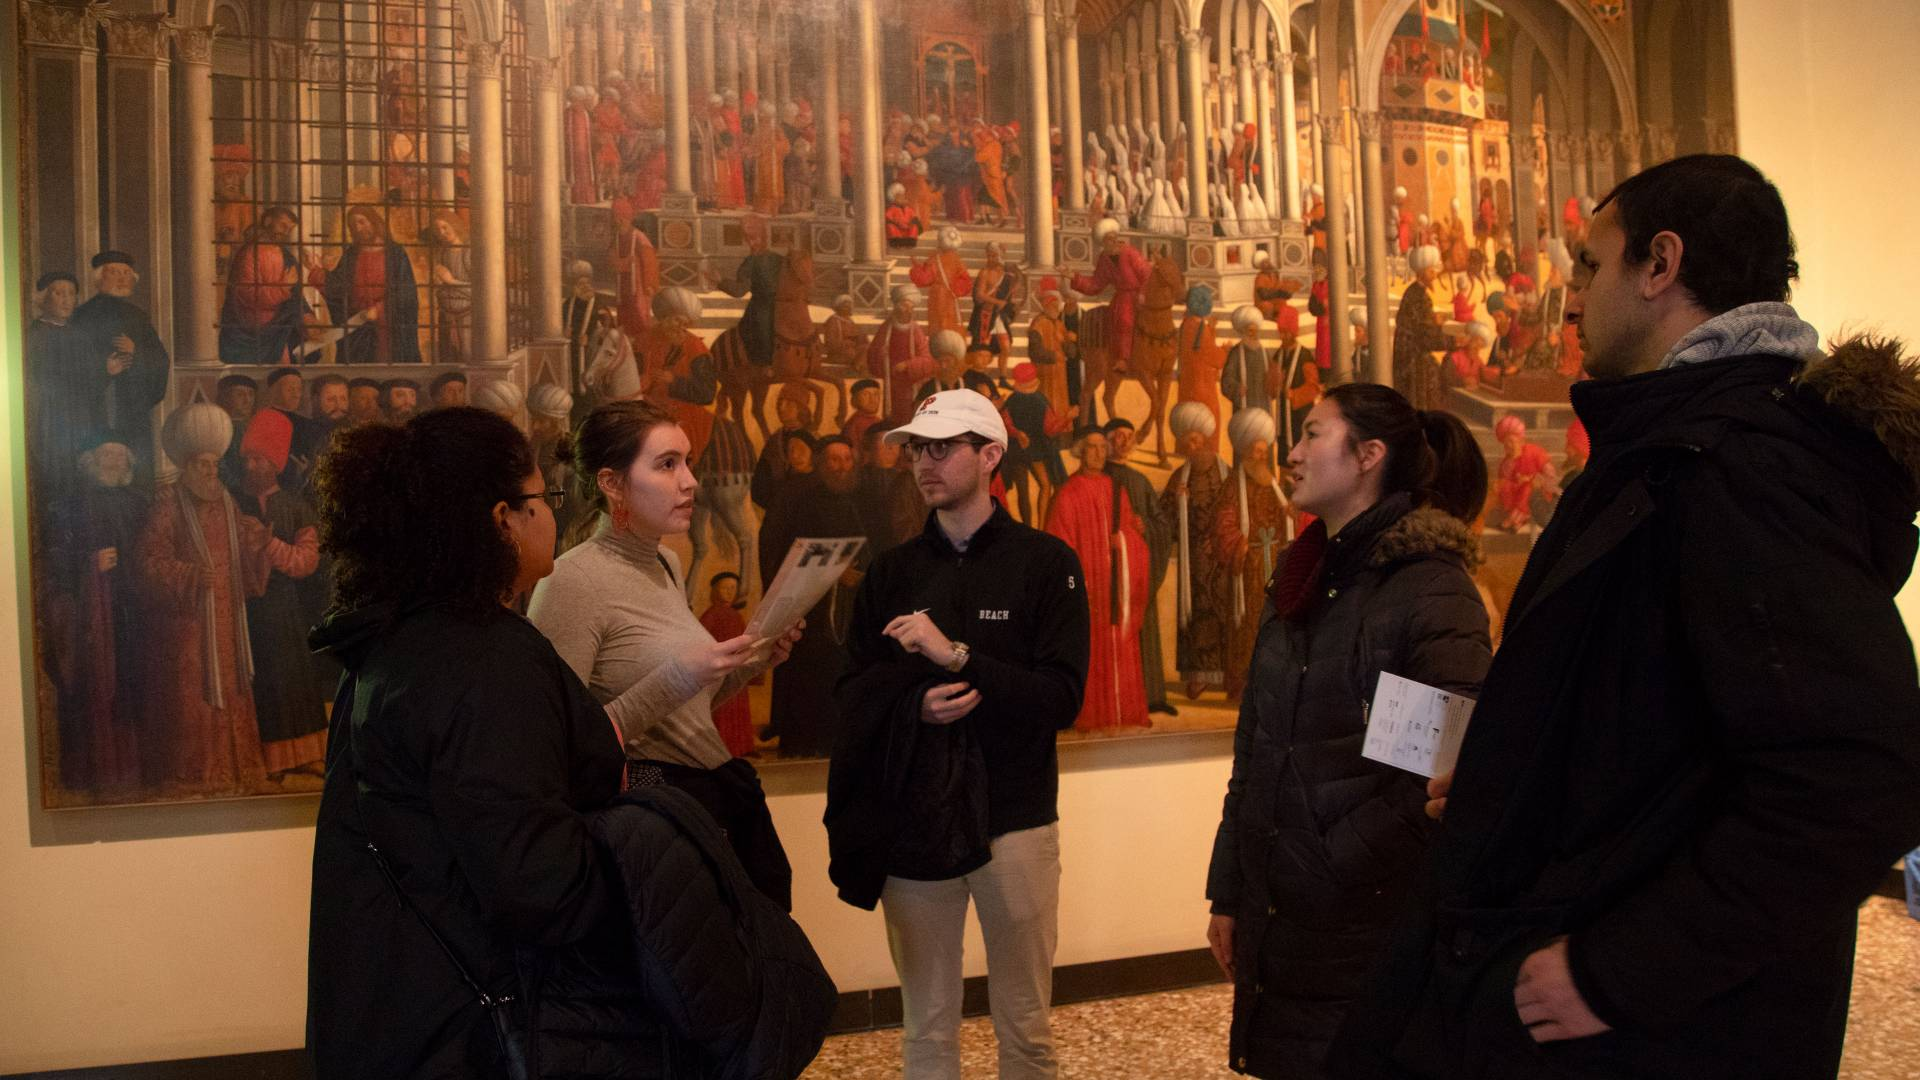 Sofie Feist with students at Gallerie dell'Accademia in Venice